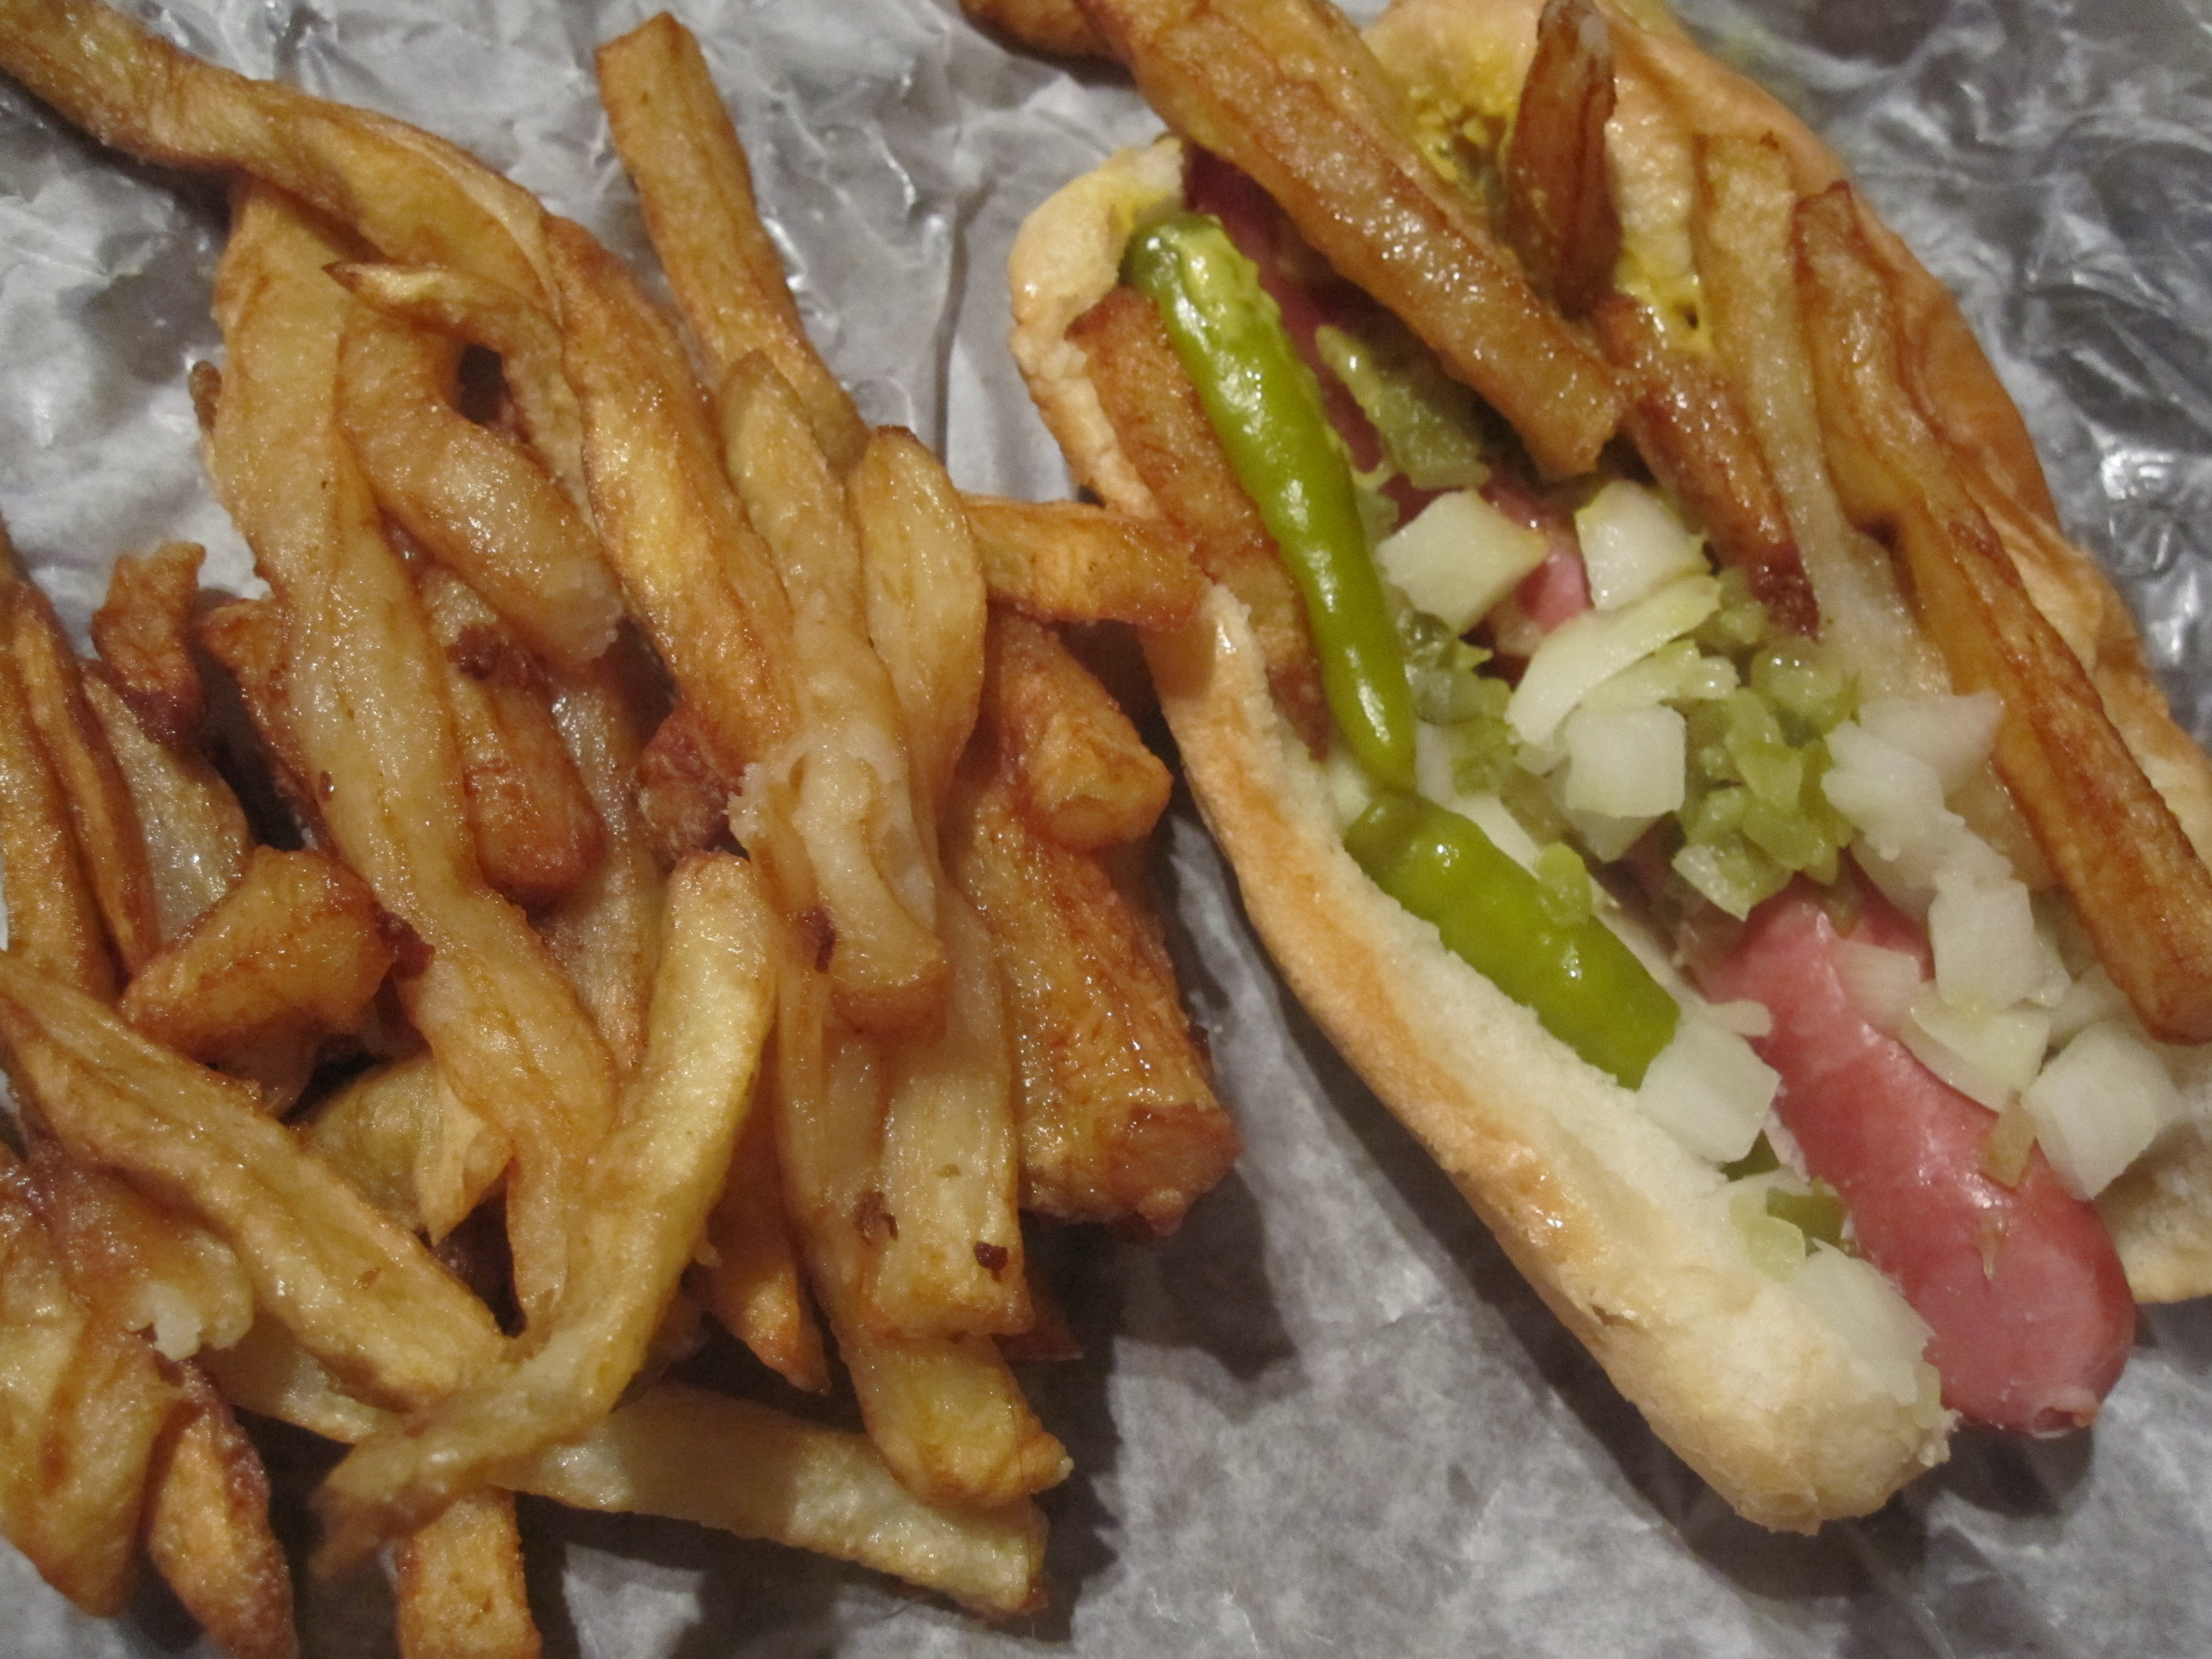 File:Gene and Judes Hot Dog.jpg - Wikimedia Commons